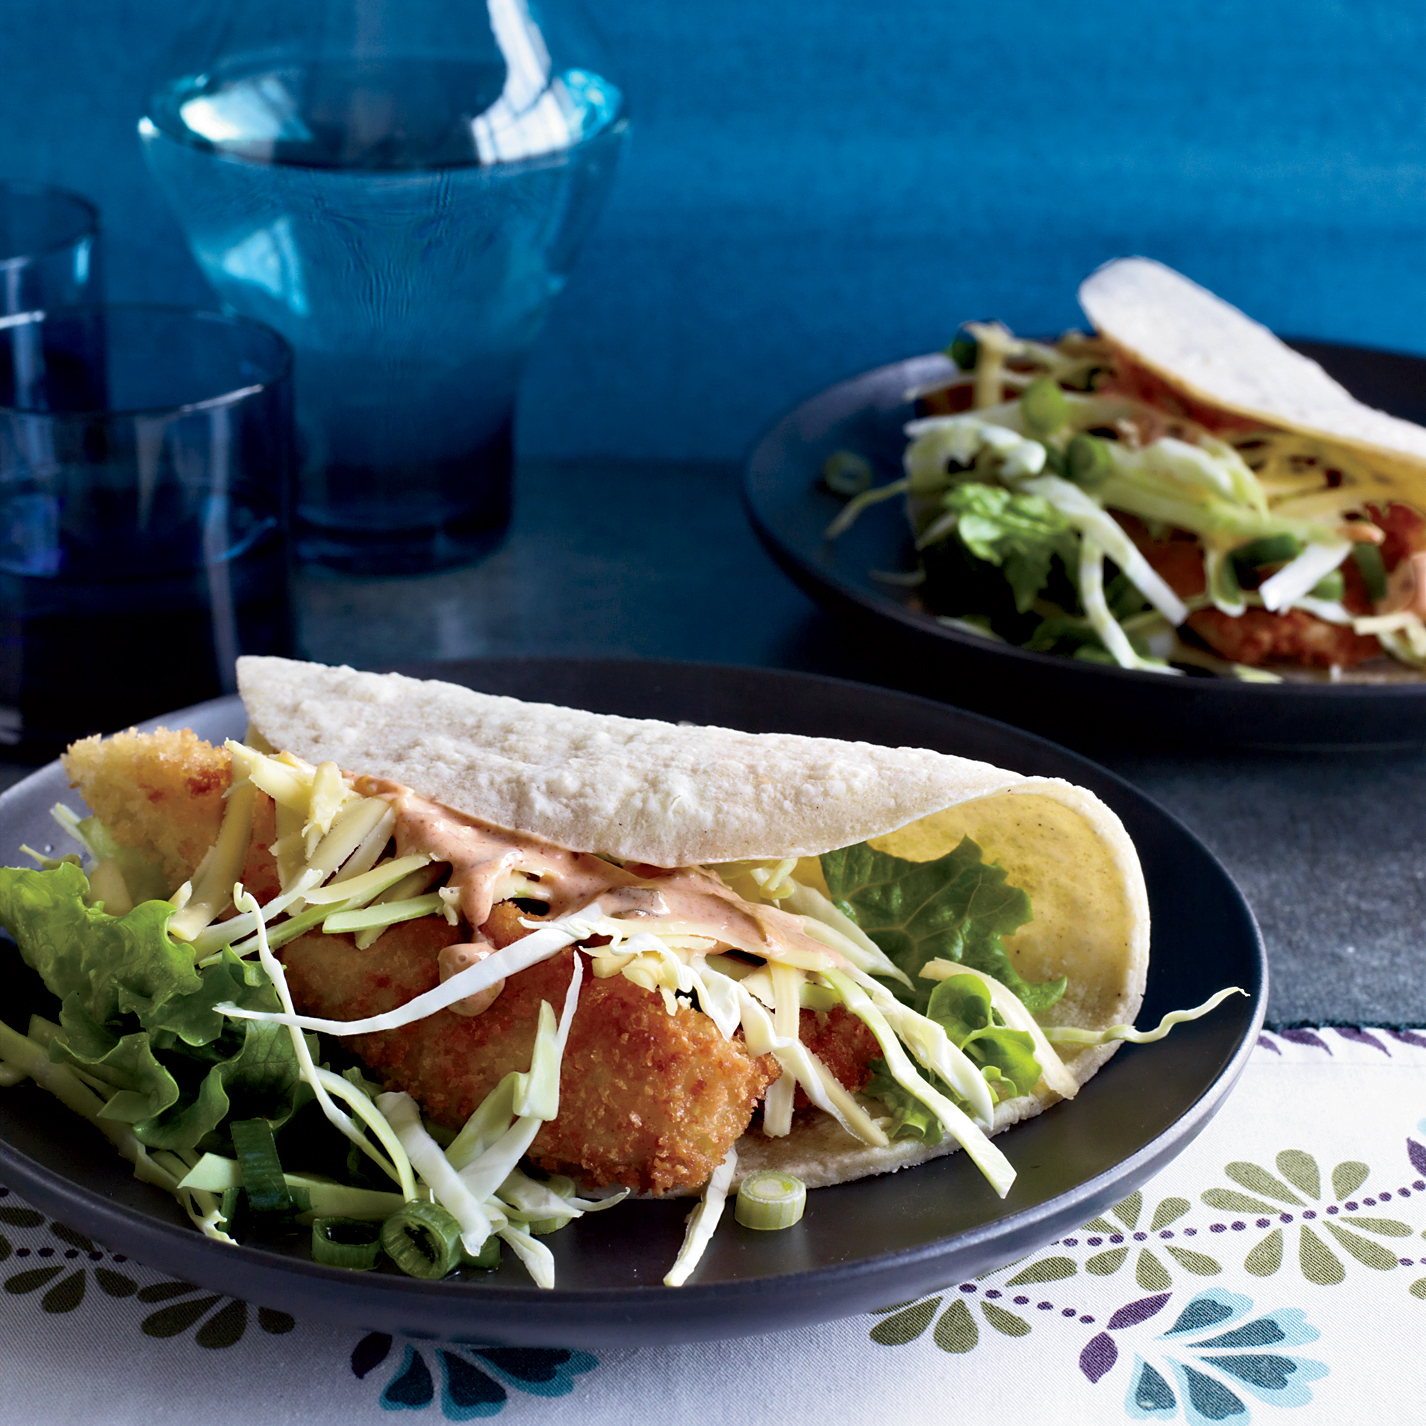 201005-r-fried-fish-tacos.jpg